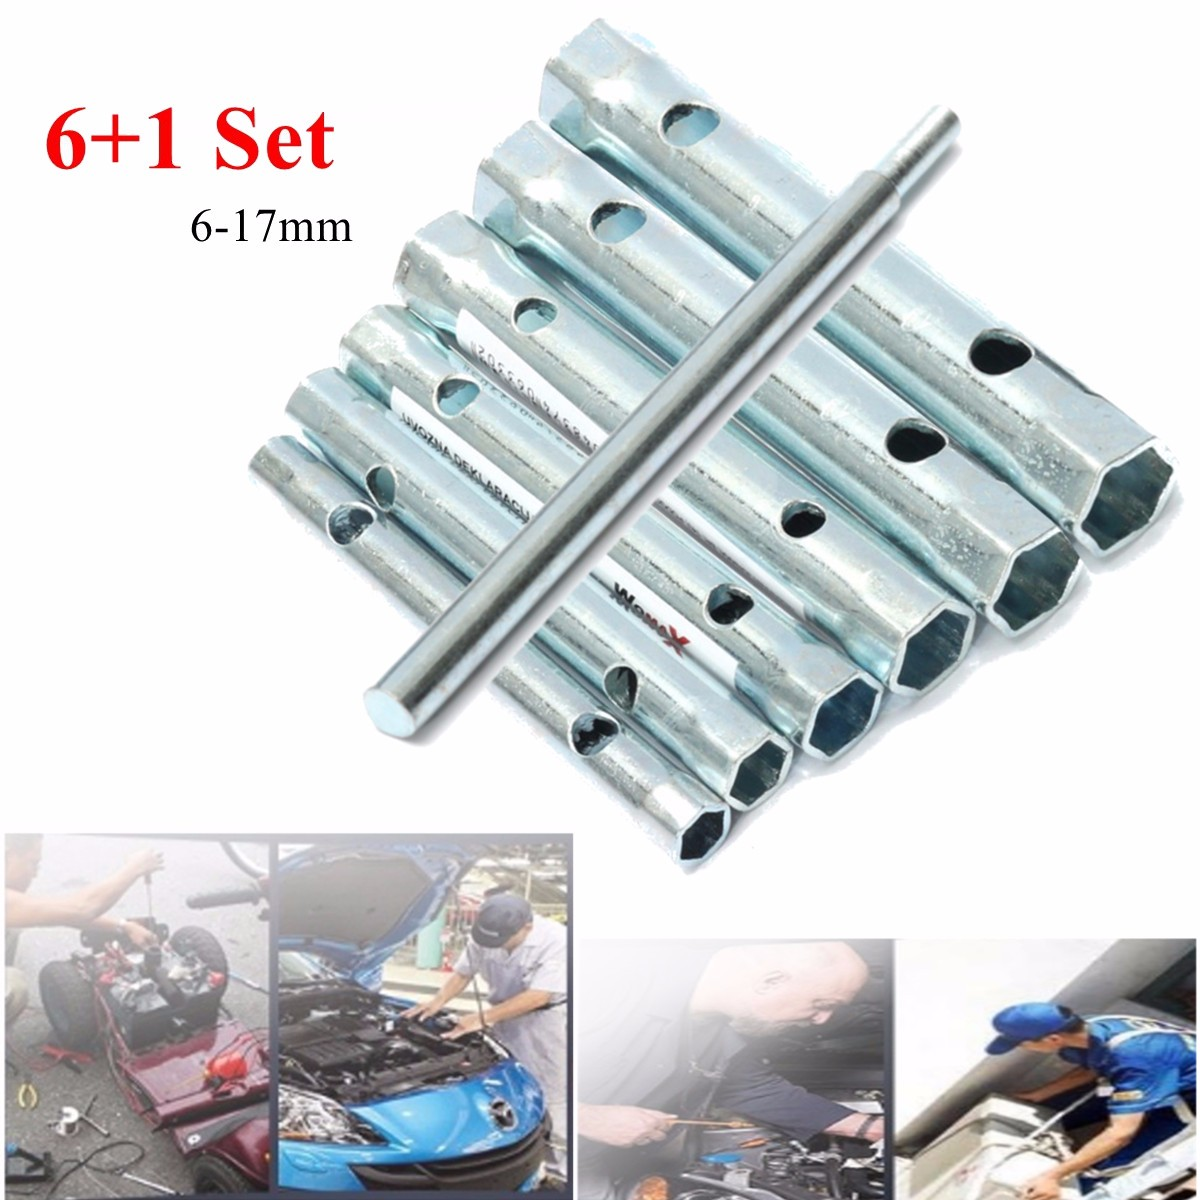 6Pcs Tubular Box Spanner Tube Spanner Wrench Metric Socket Set 6mm-17mm